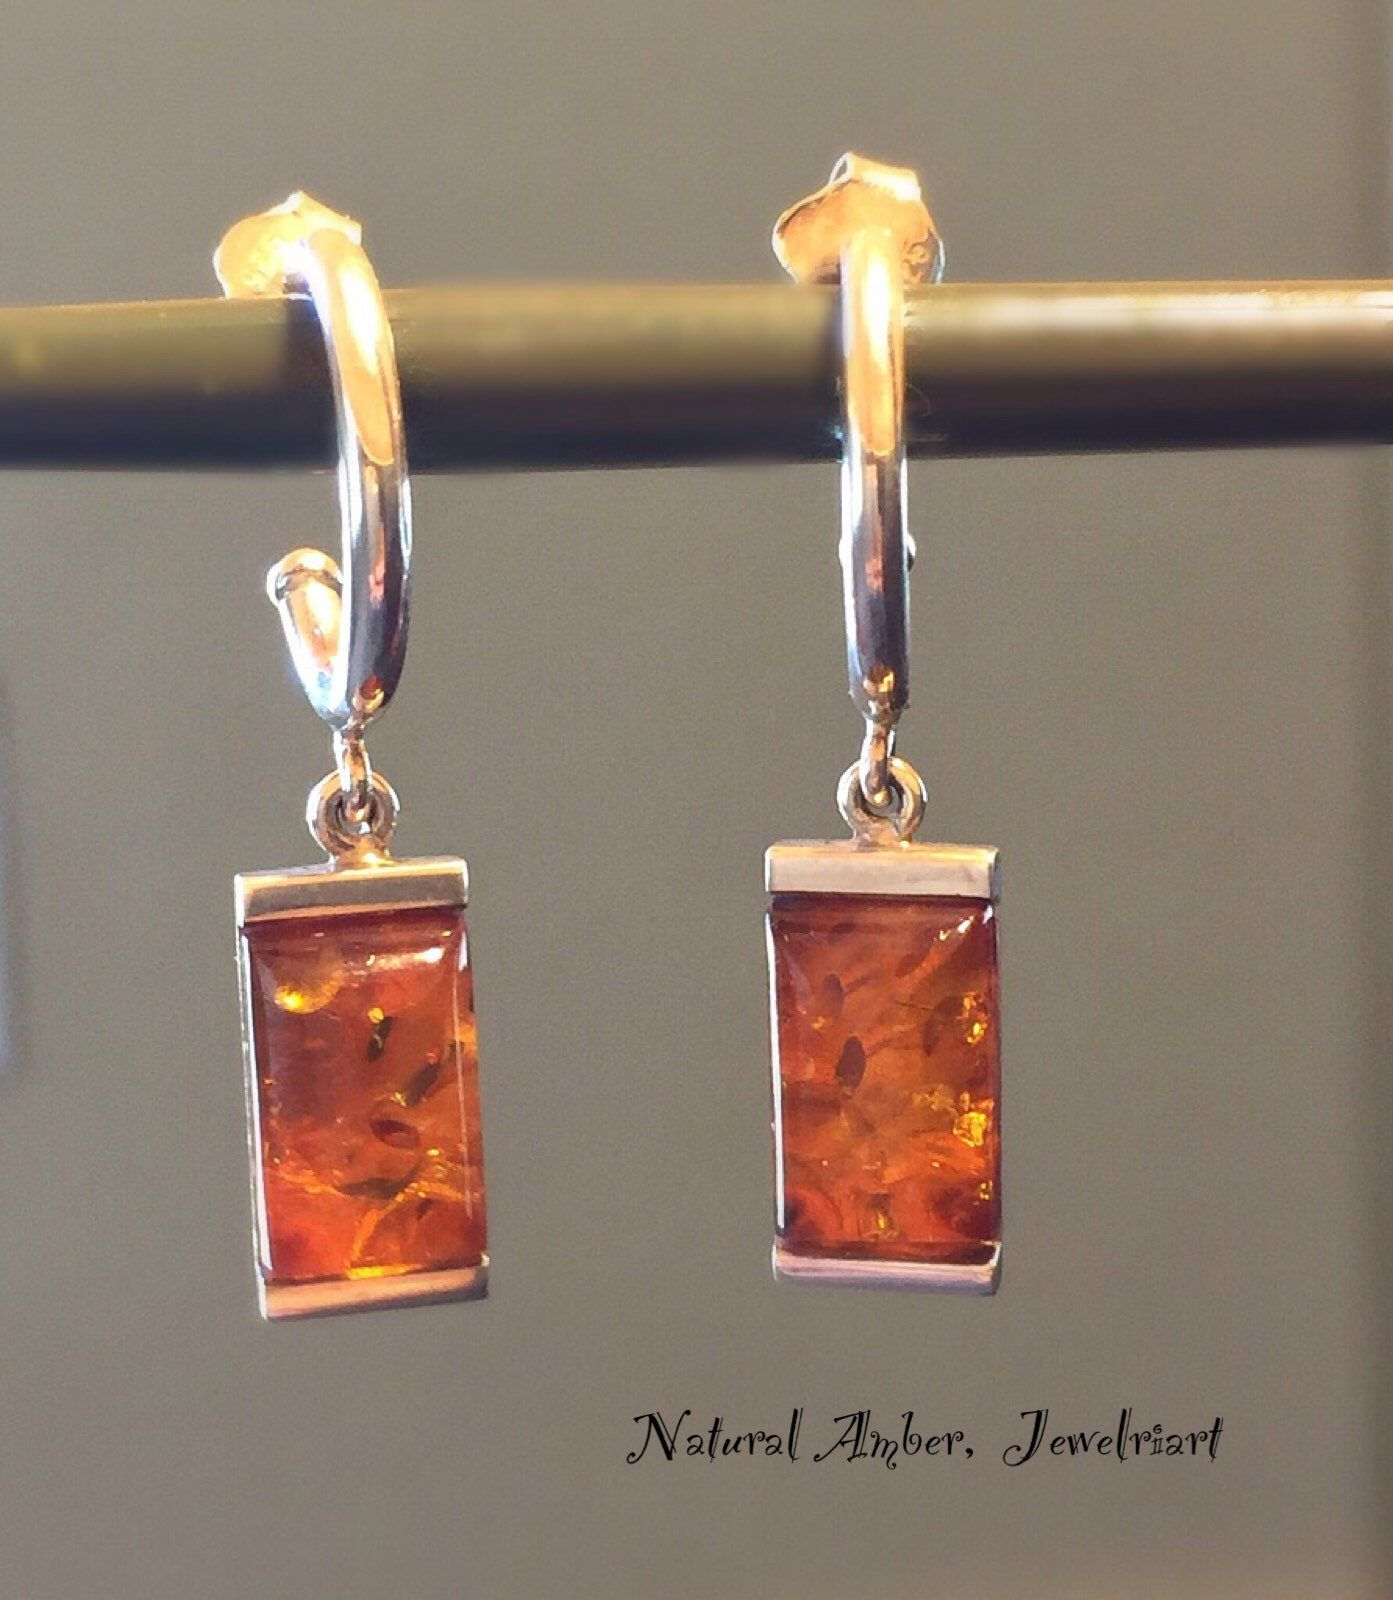 486407557 ... addition to my #etsy shop: Amber Earrings Dangle Earrings Earrings  Organic Amber Earrings Natural Amber Earrings Modern Amber Earrings Free US  Ship.